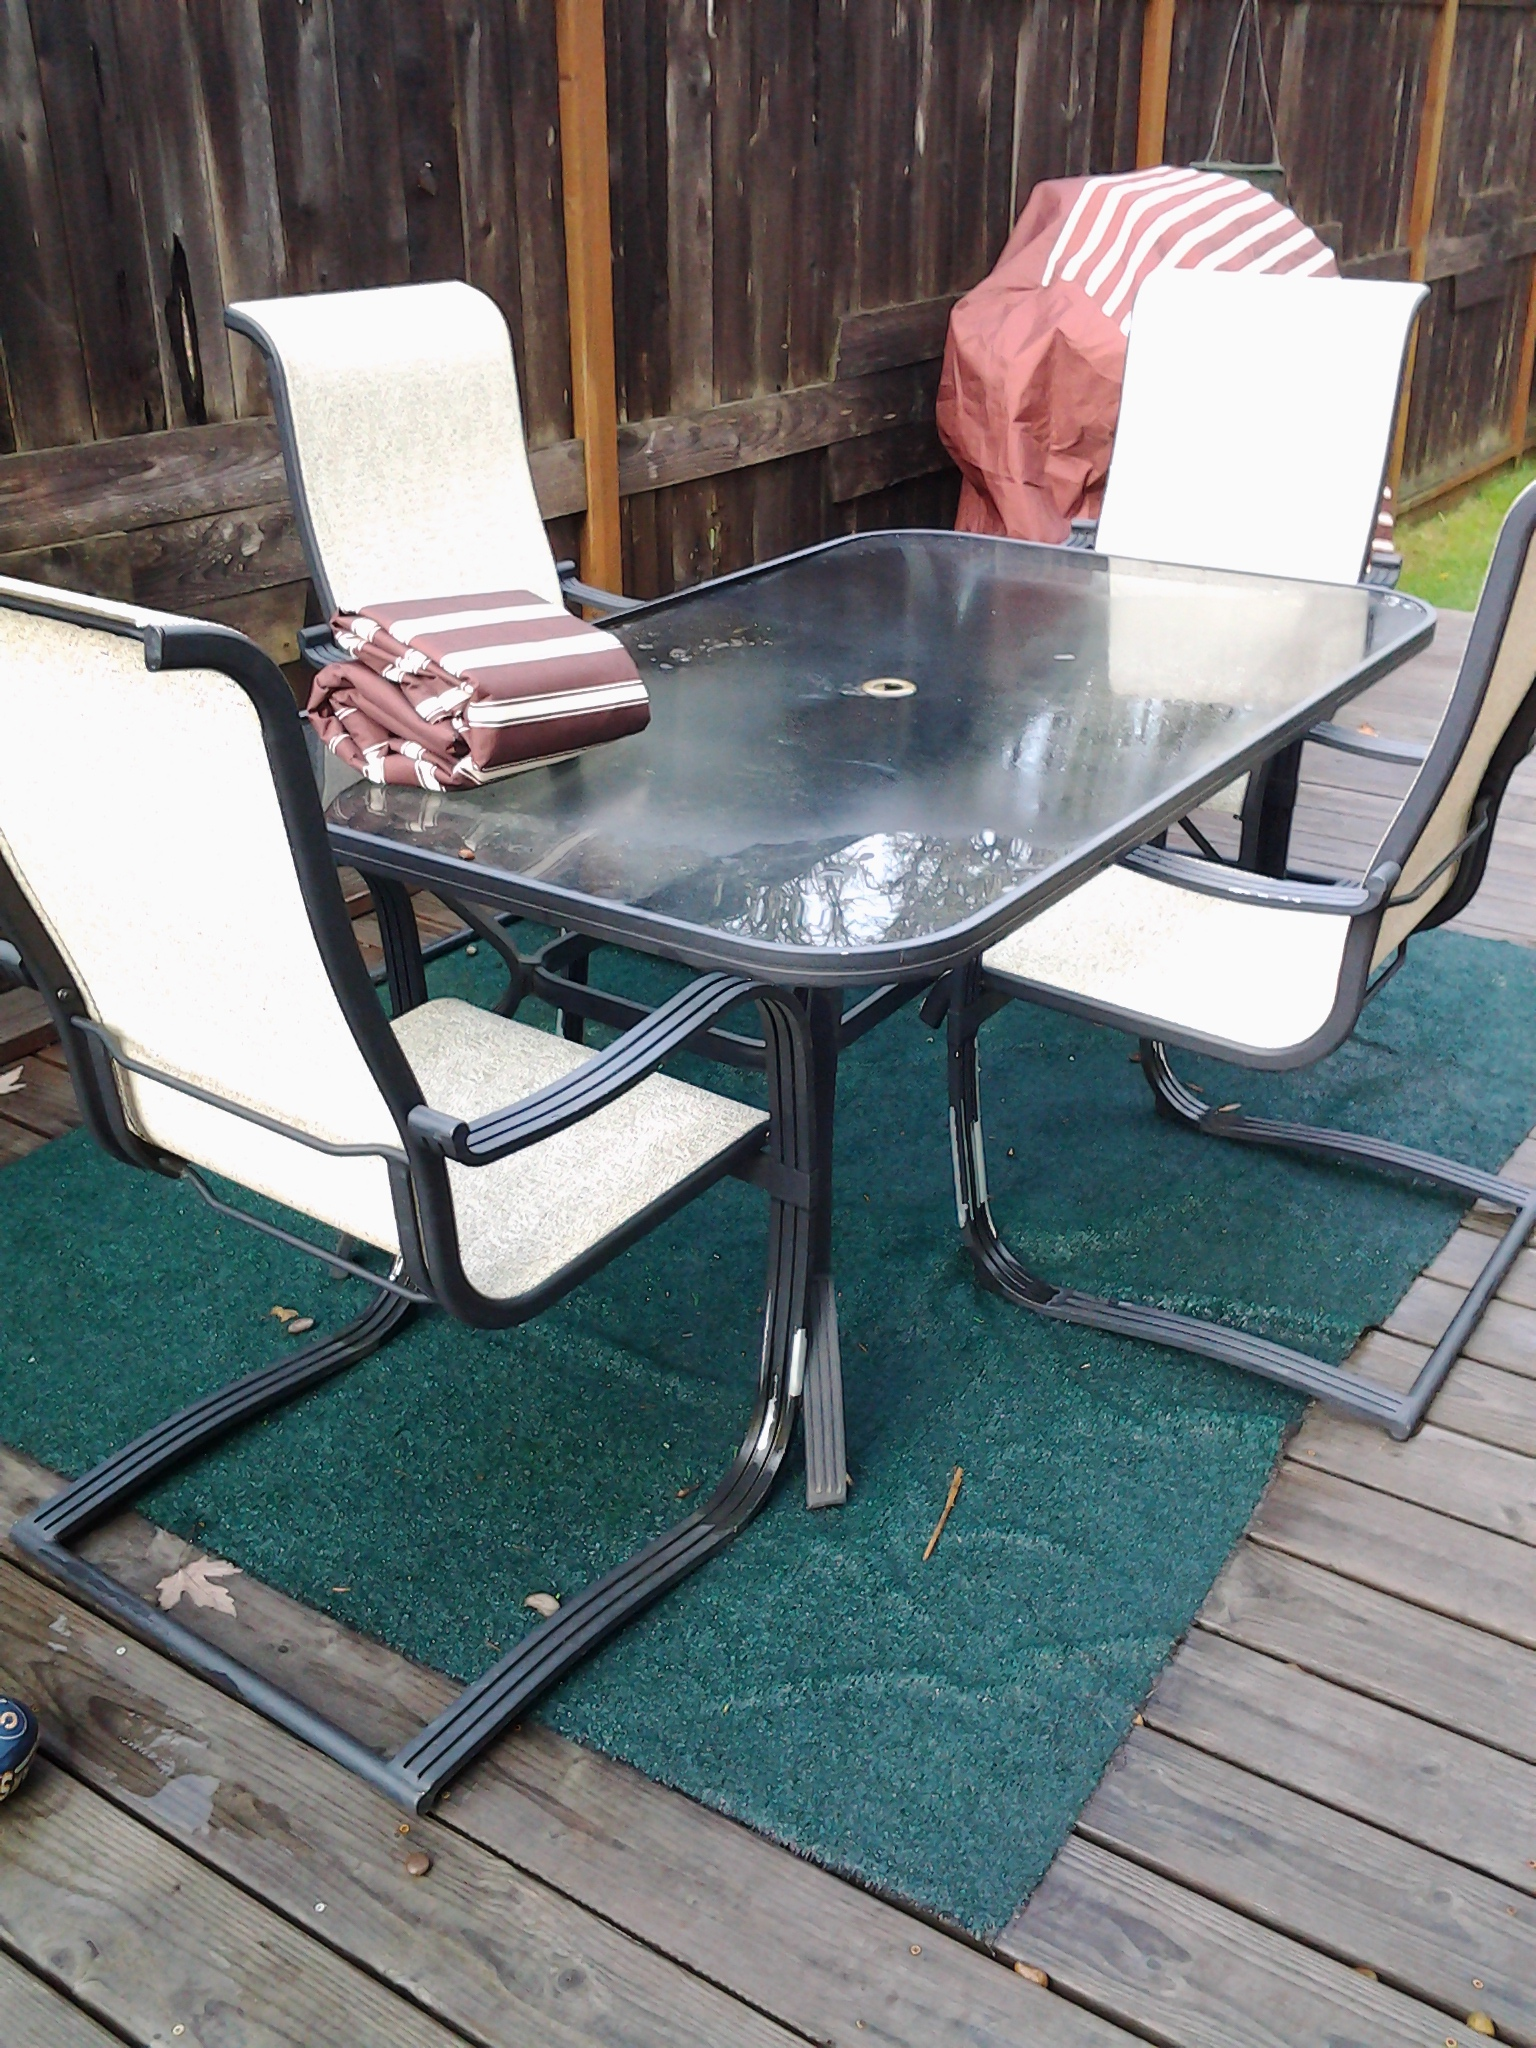 I Contacted Empire Covers To See If They Had A Furniture Cover That Would Help Me Extend The Life Of Our Patio Table And Chairs